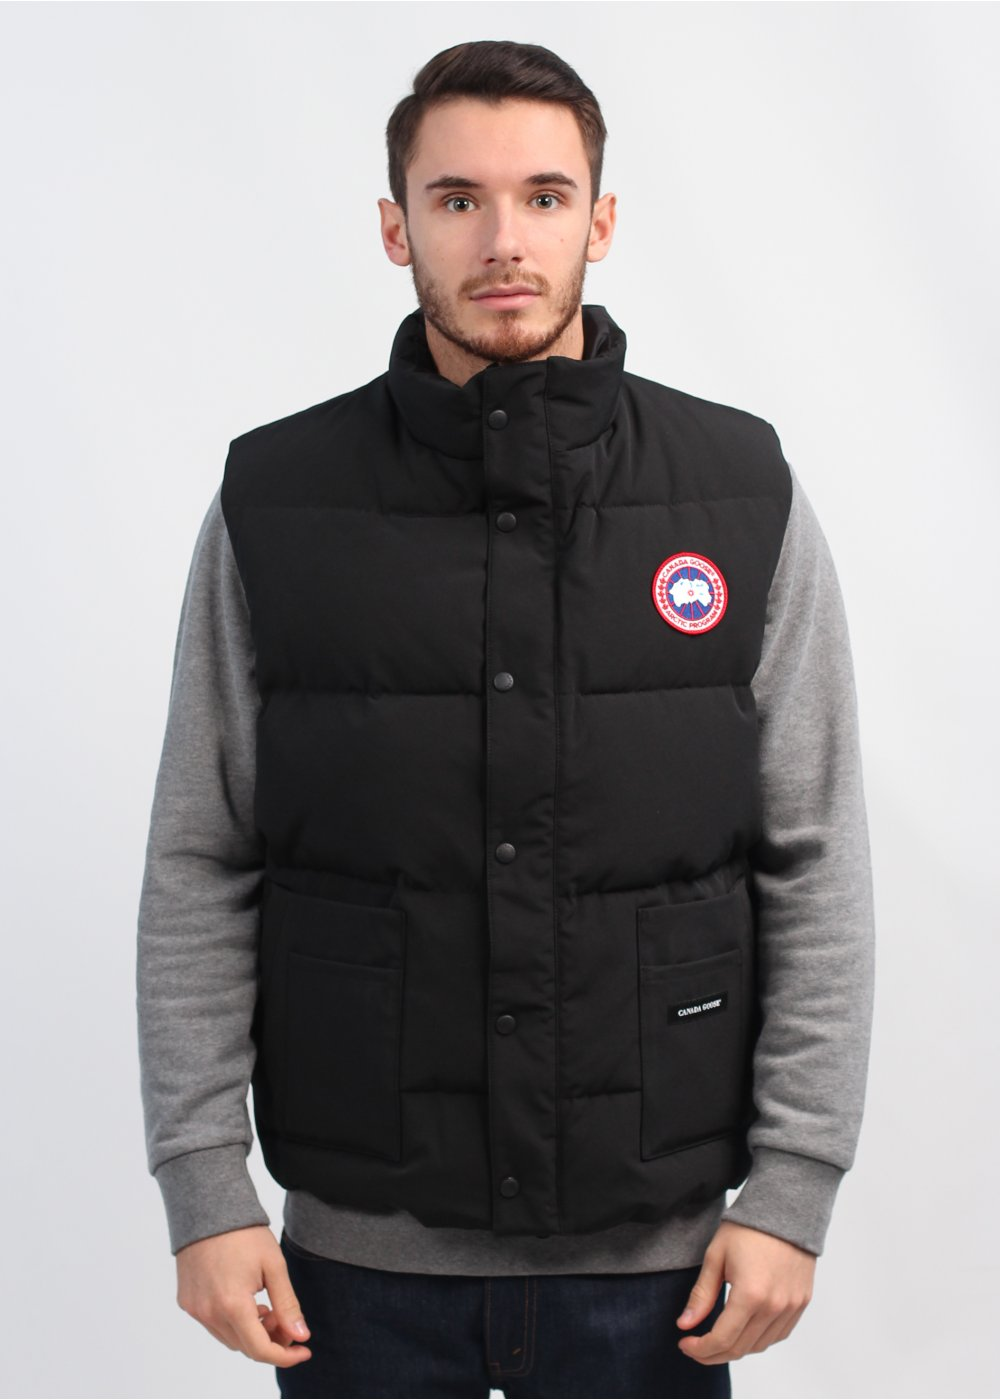 canada goose mens jacket xl